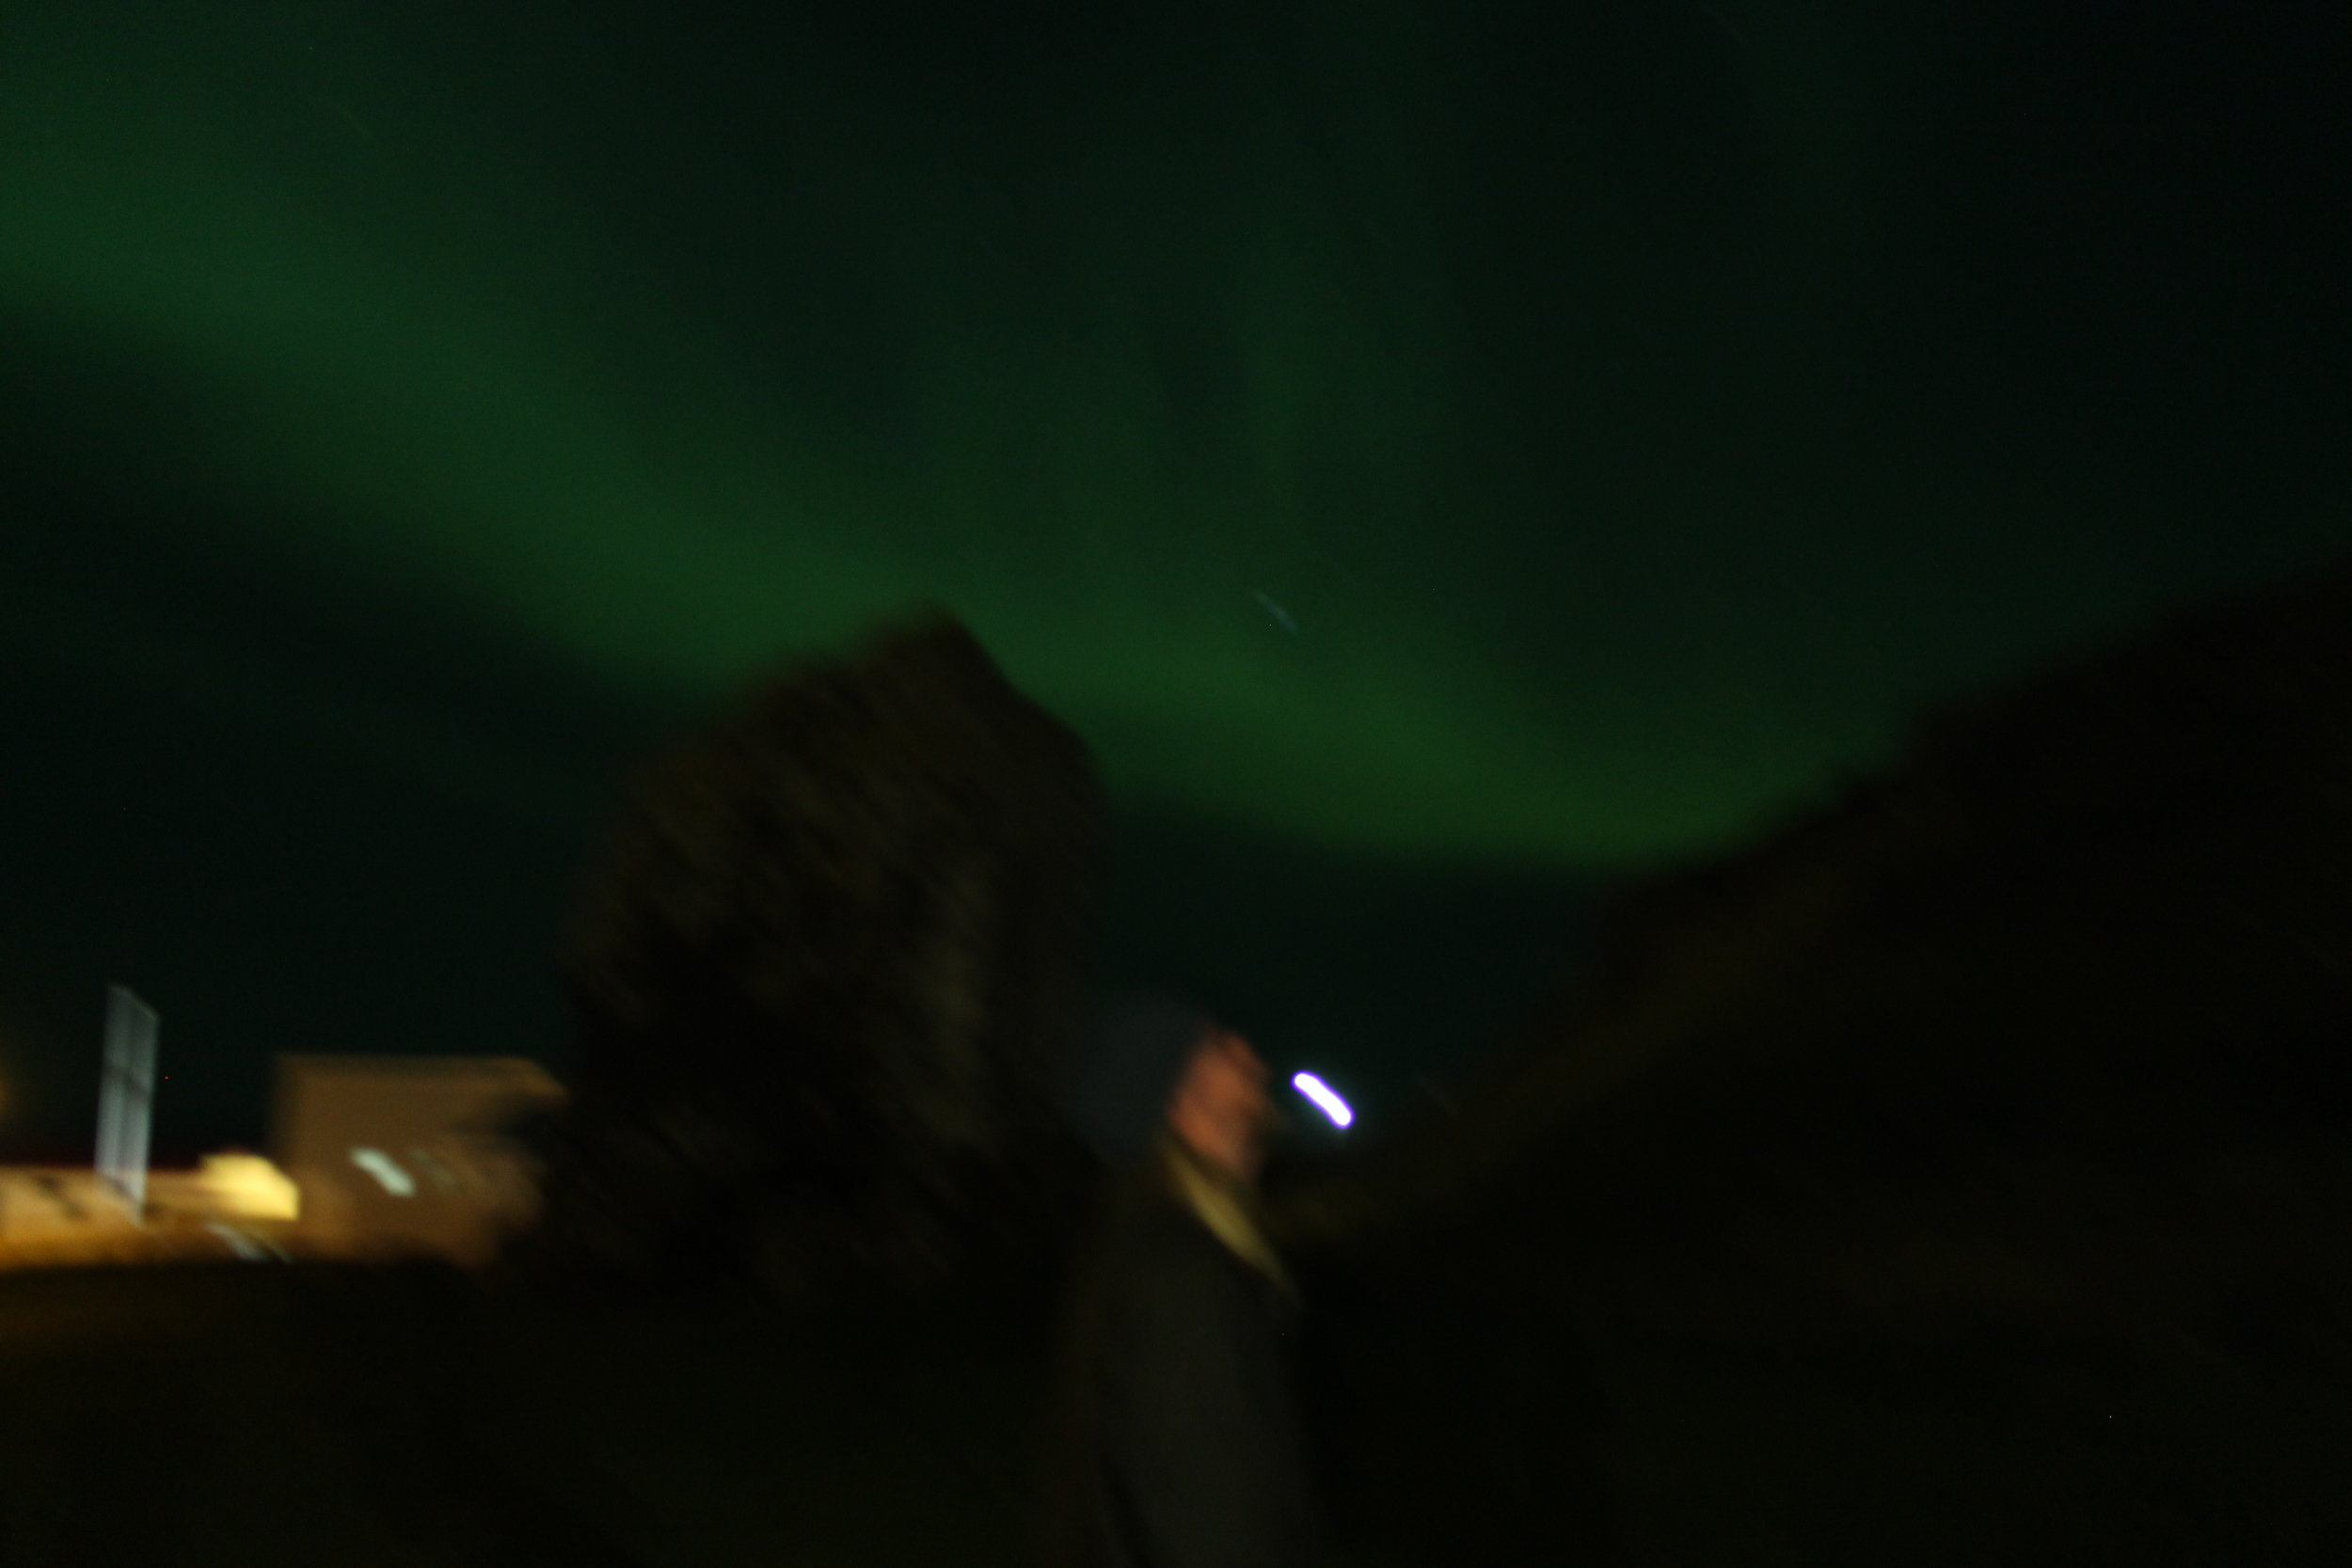 Max Razdow, Jesse, Troll Stone and The Northern Lights in Drangsnes, 2015,Digital photograph.